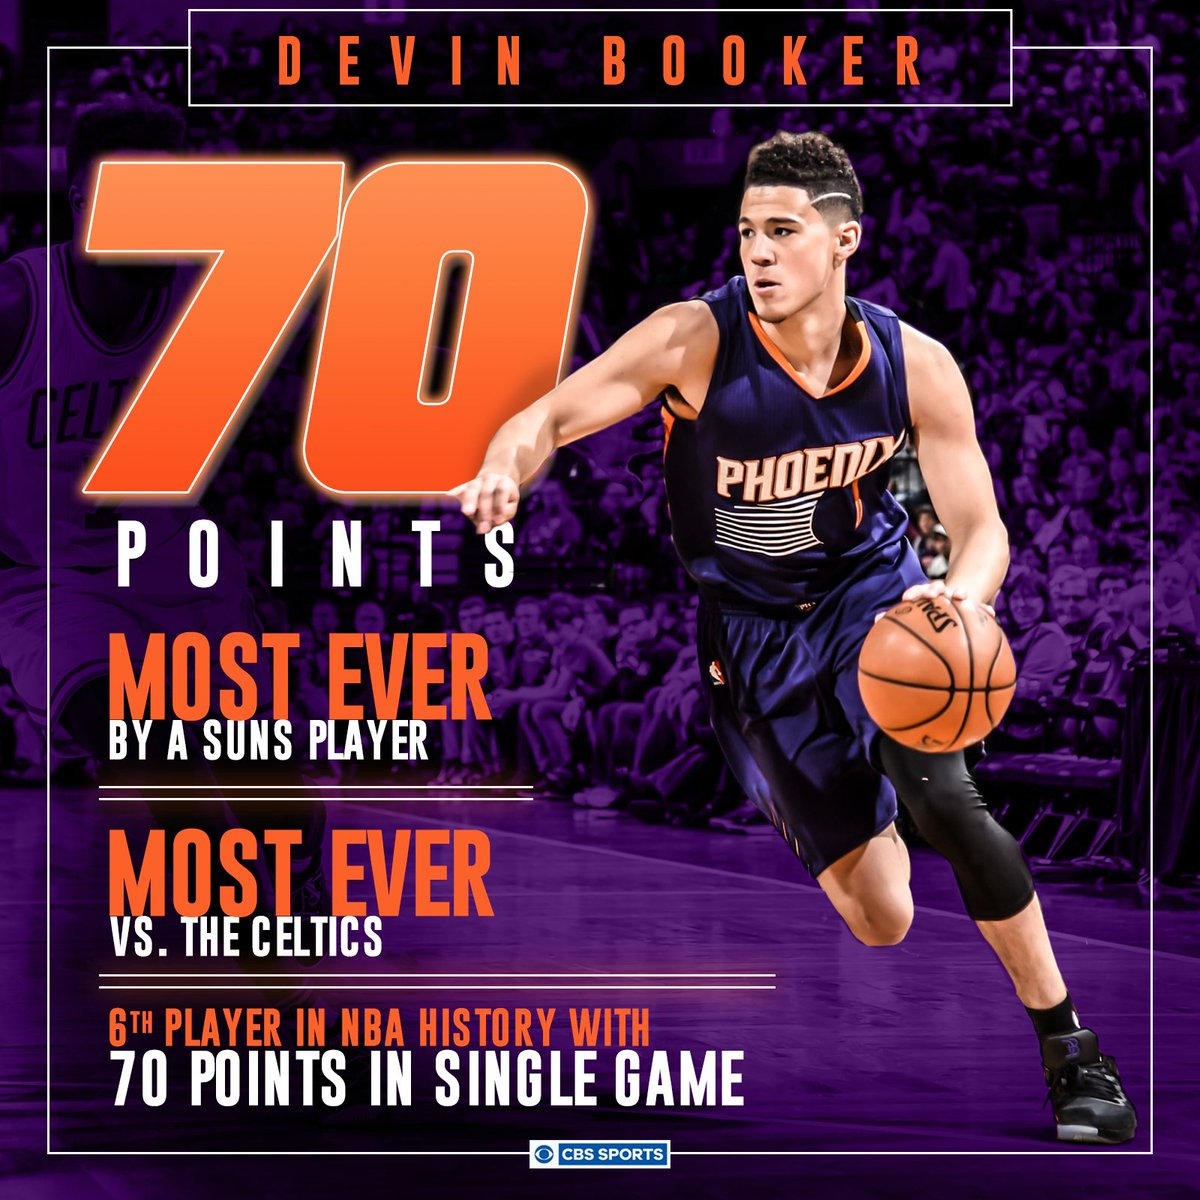 Devin Booker is 20 years old.  He just dropped SEVENTY in an NBA game....